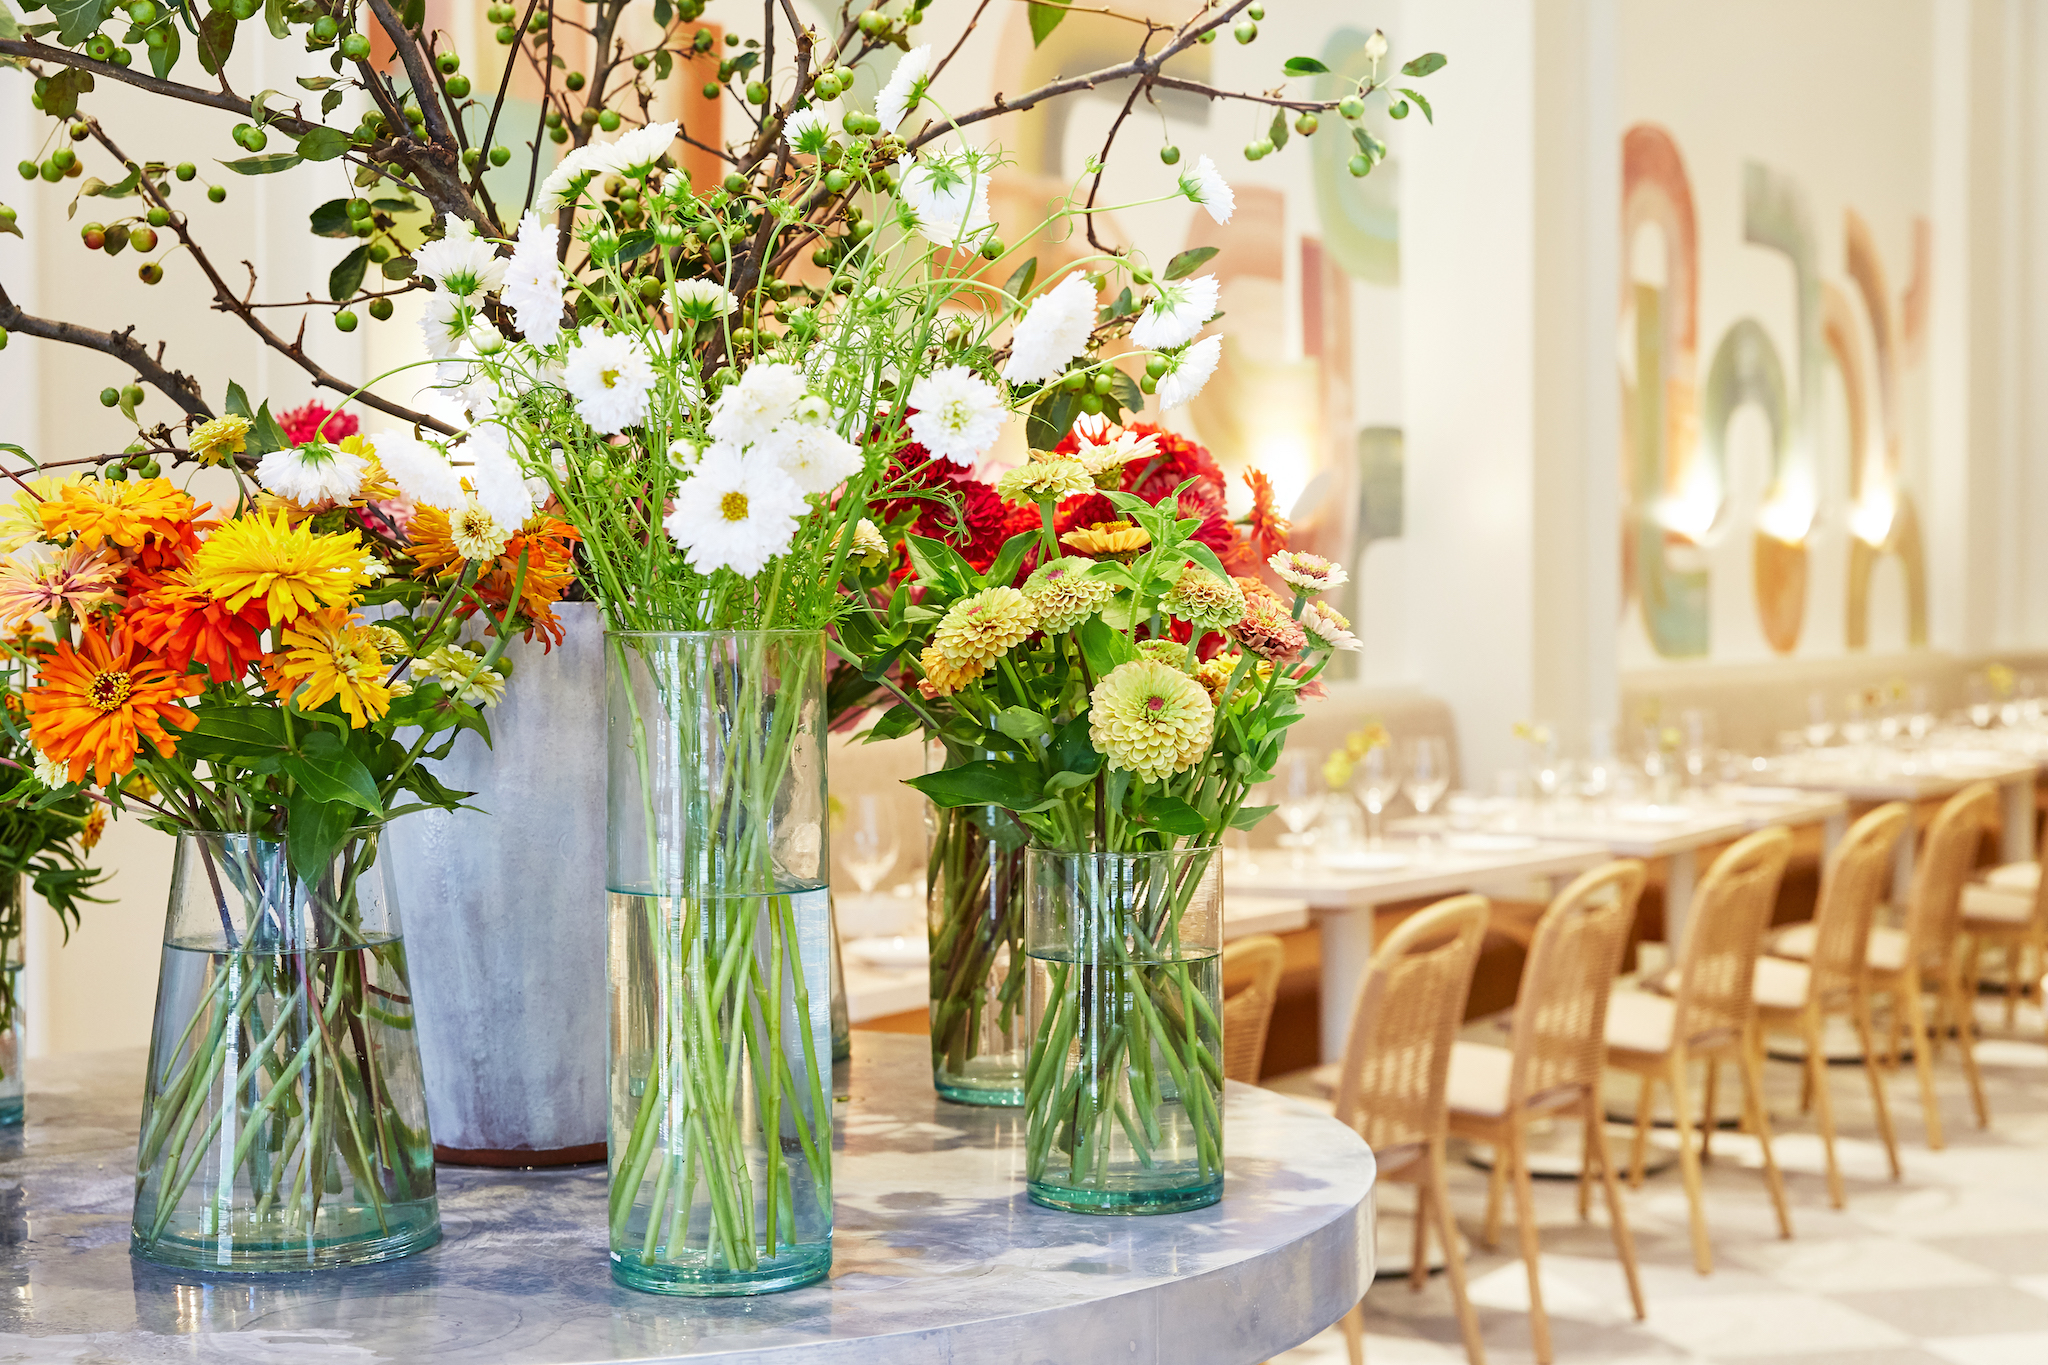 Where to find flowers at NYC restaurants, bars and coffee shops